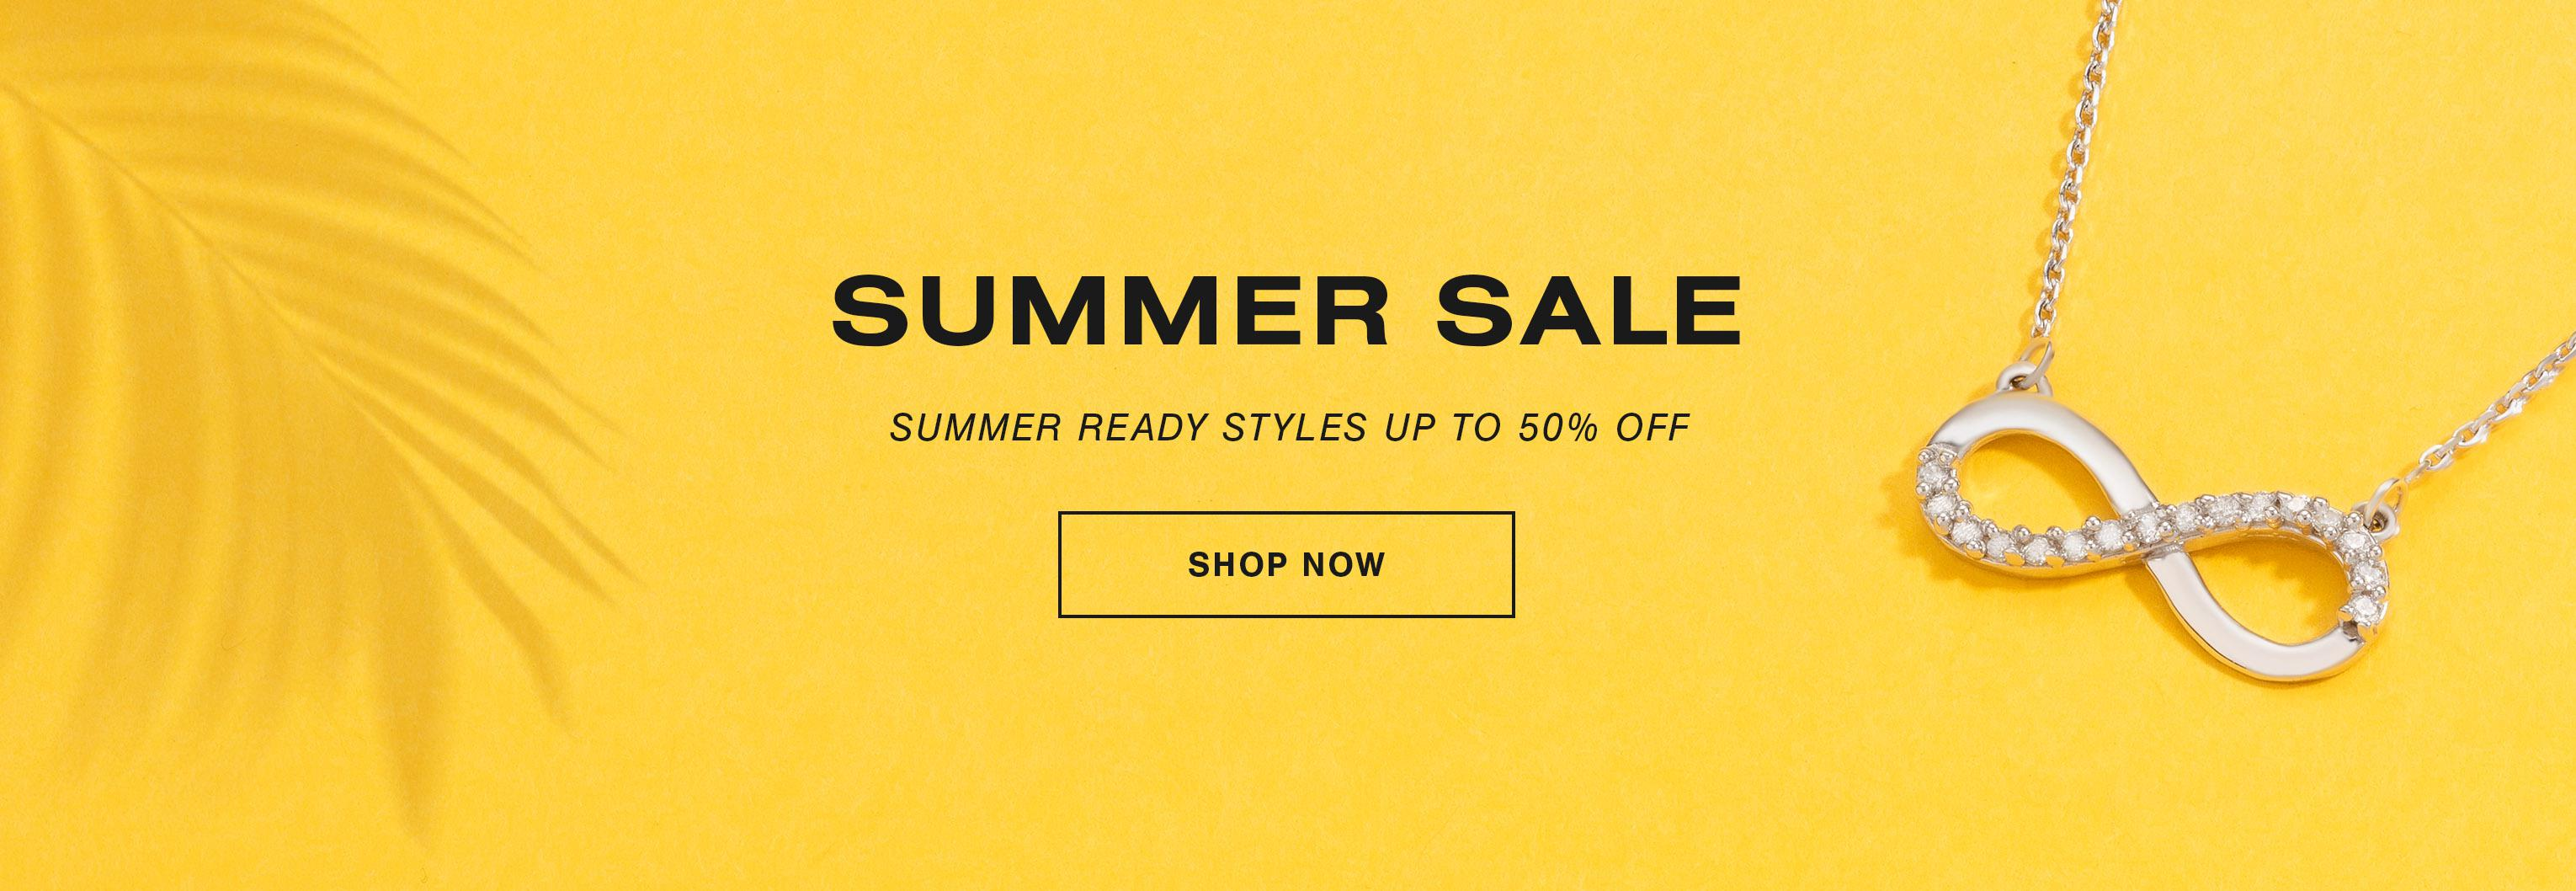 Summer Sale: Up To 50% Off - Shop Now